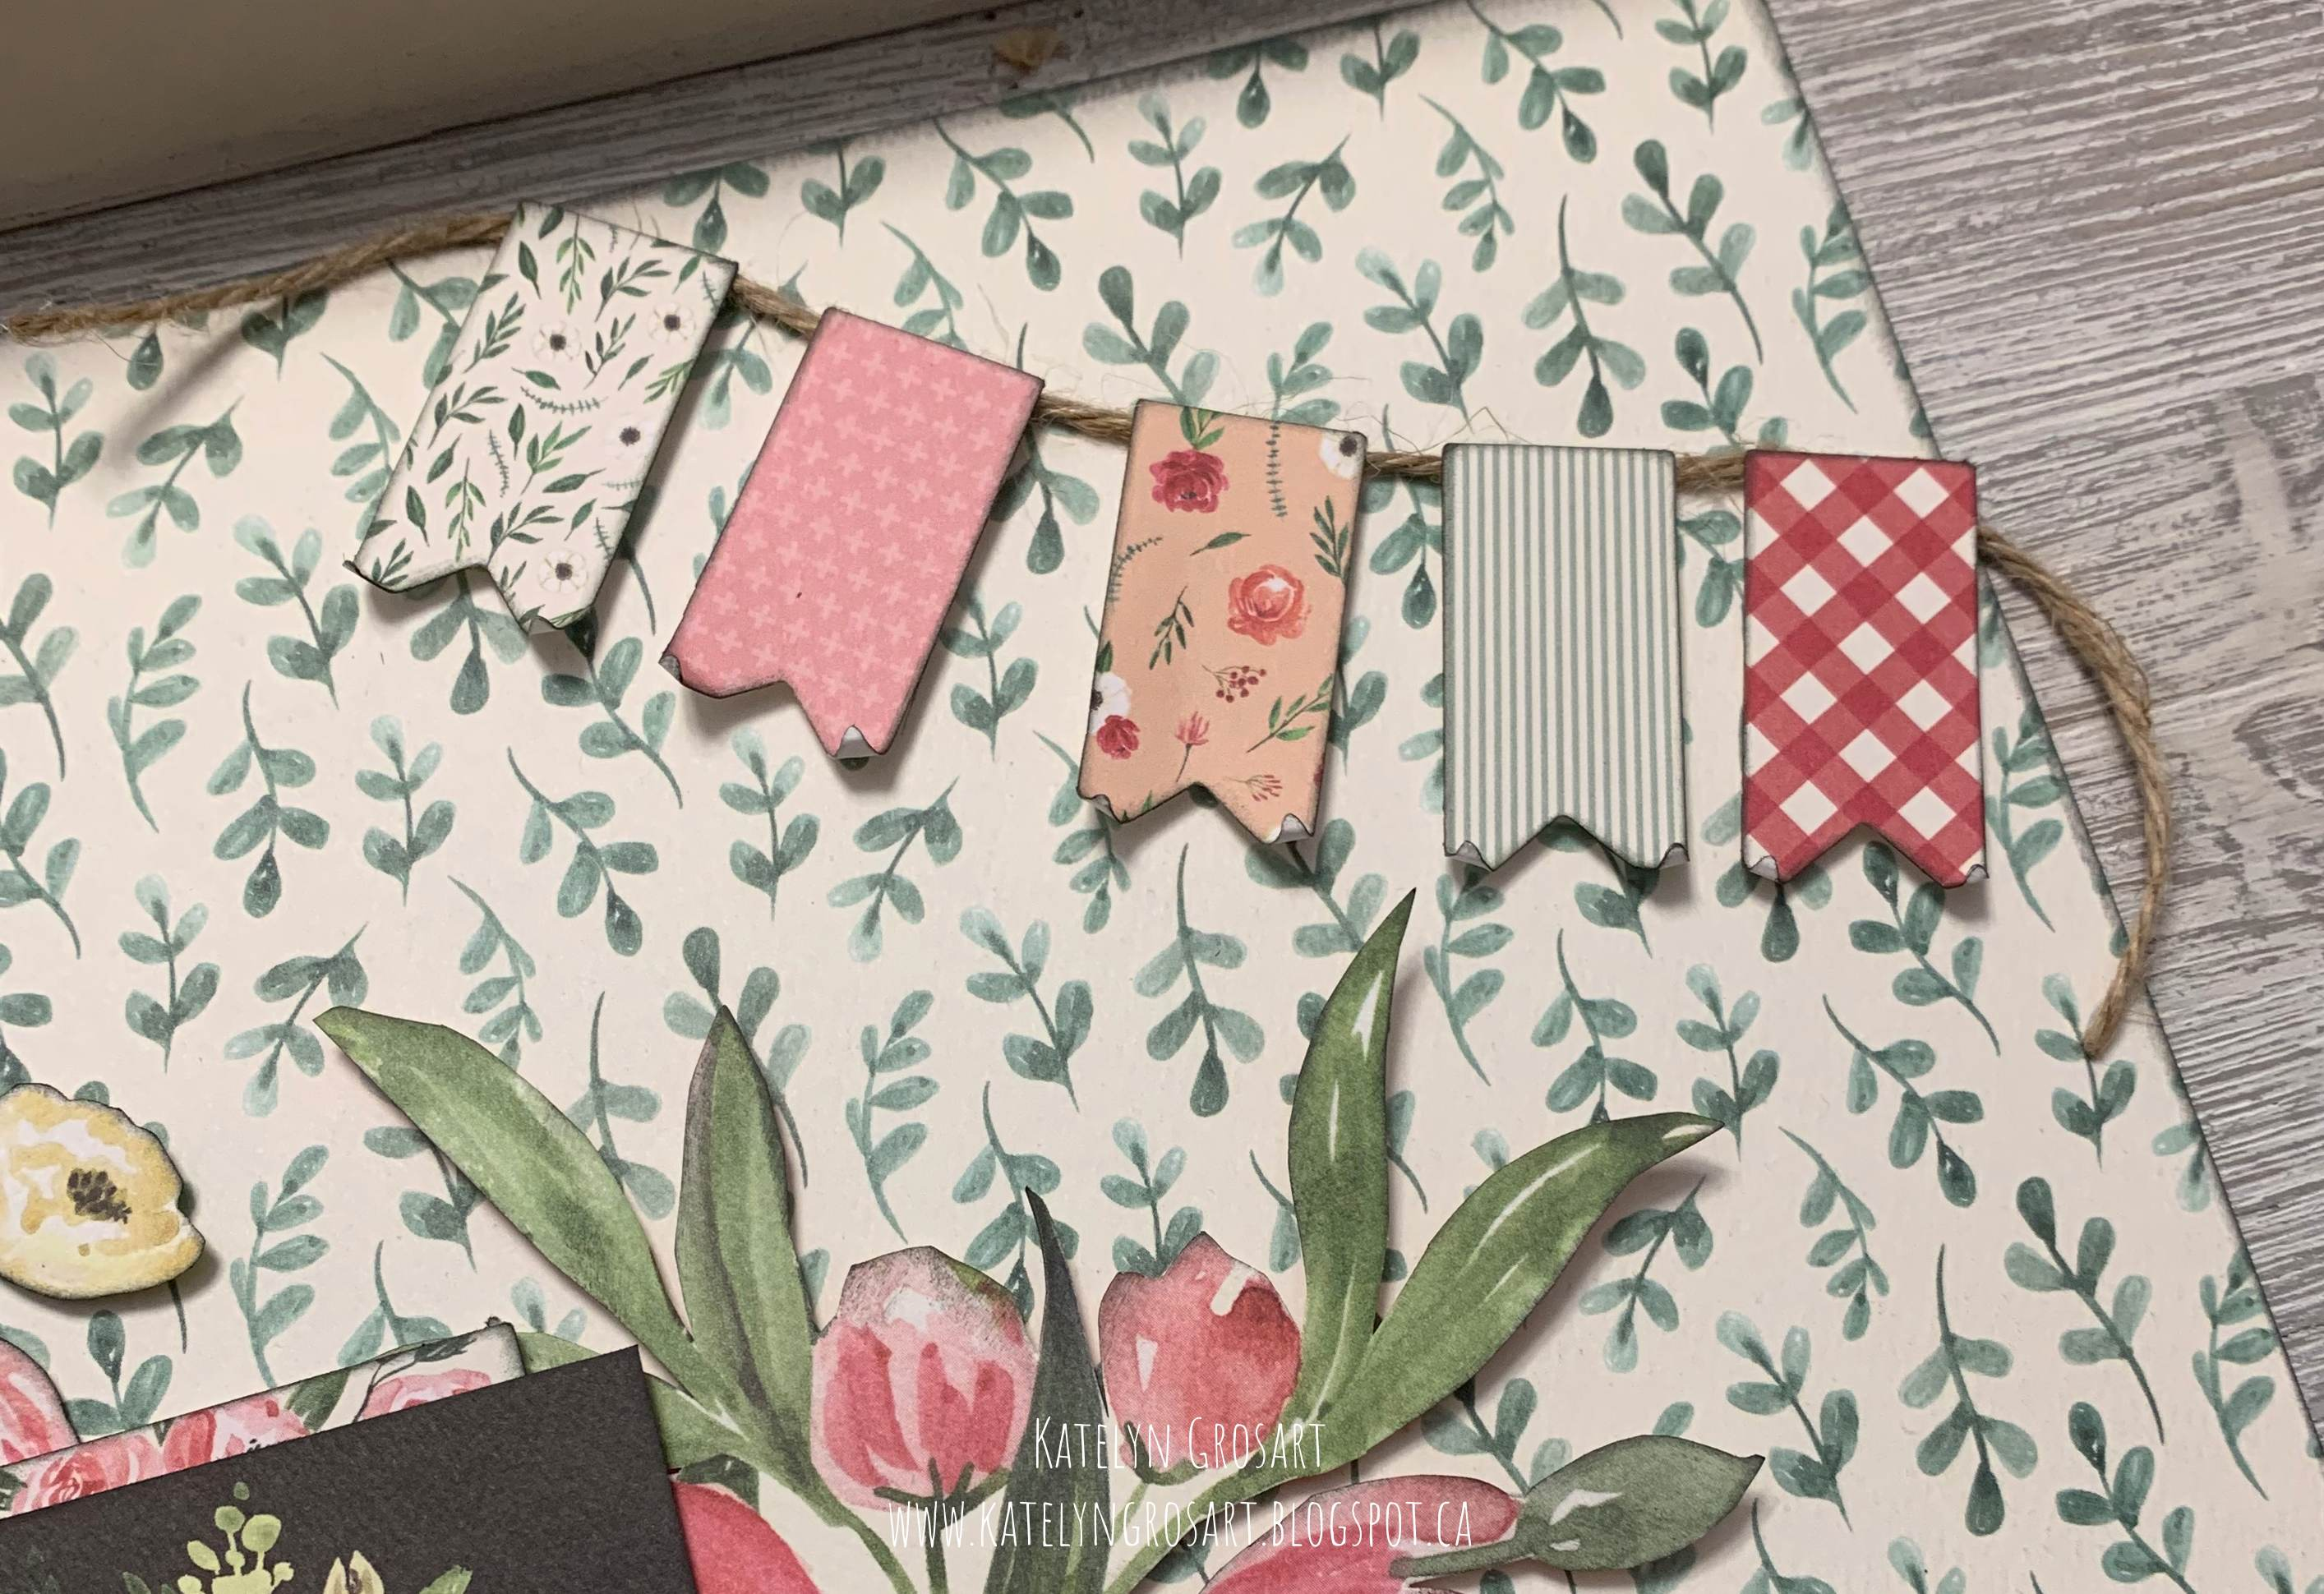 Details of a scrapbook layout featuring the Botanical Garden collection by Carta Bella designed by Katelyn Grosart